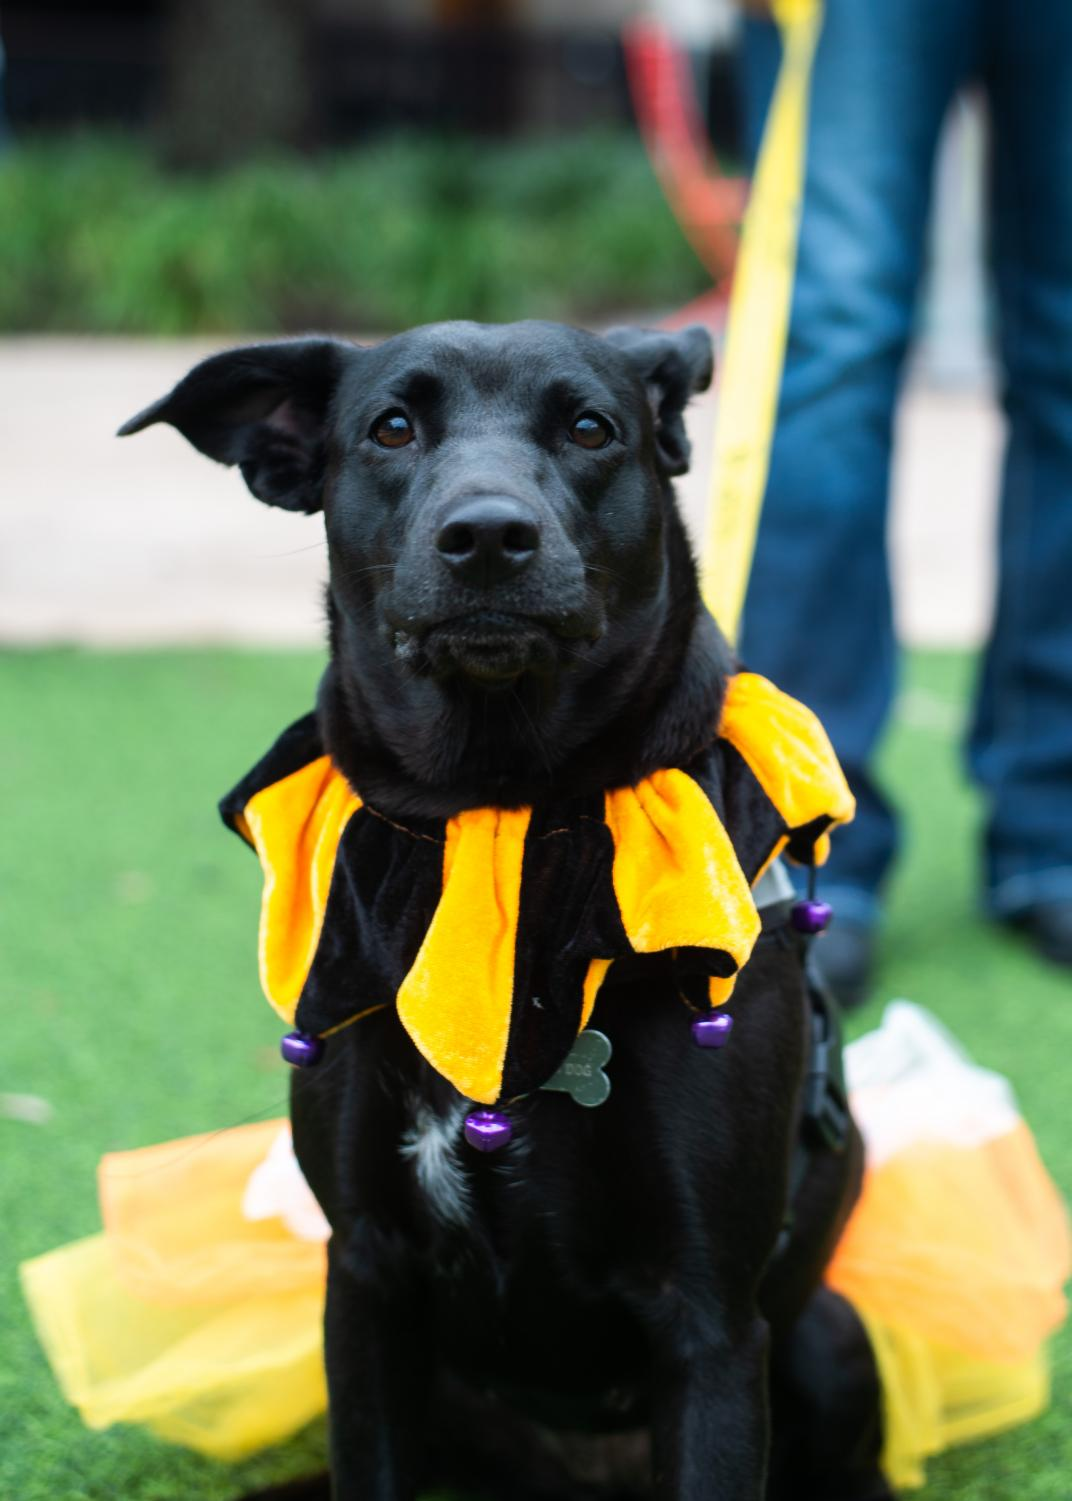 Liala%2C+a+one-year-old+mutt%2C+dons+an+orange+and+black+jester+costume.+%22She+is+up+for+adoption+and+a+great+dog+for+an+active+family%2C%22+a+worker+said.+